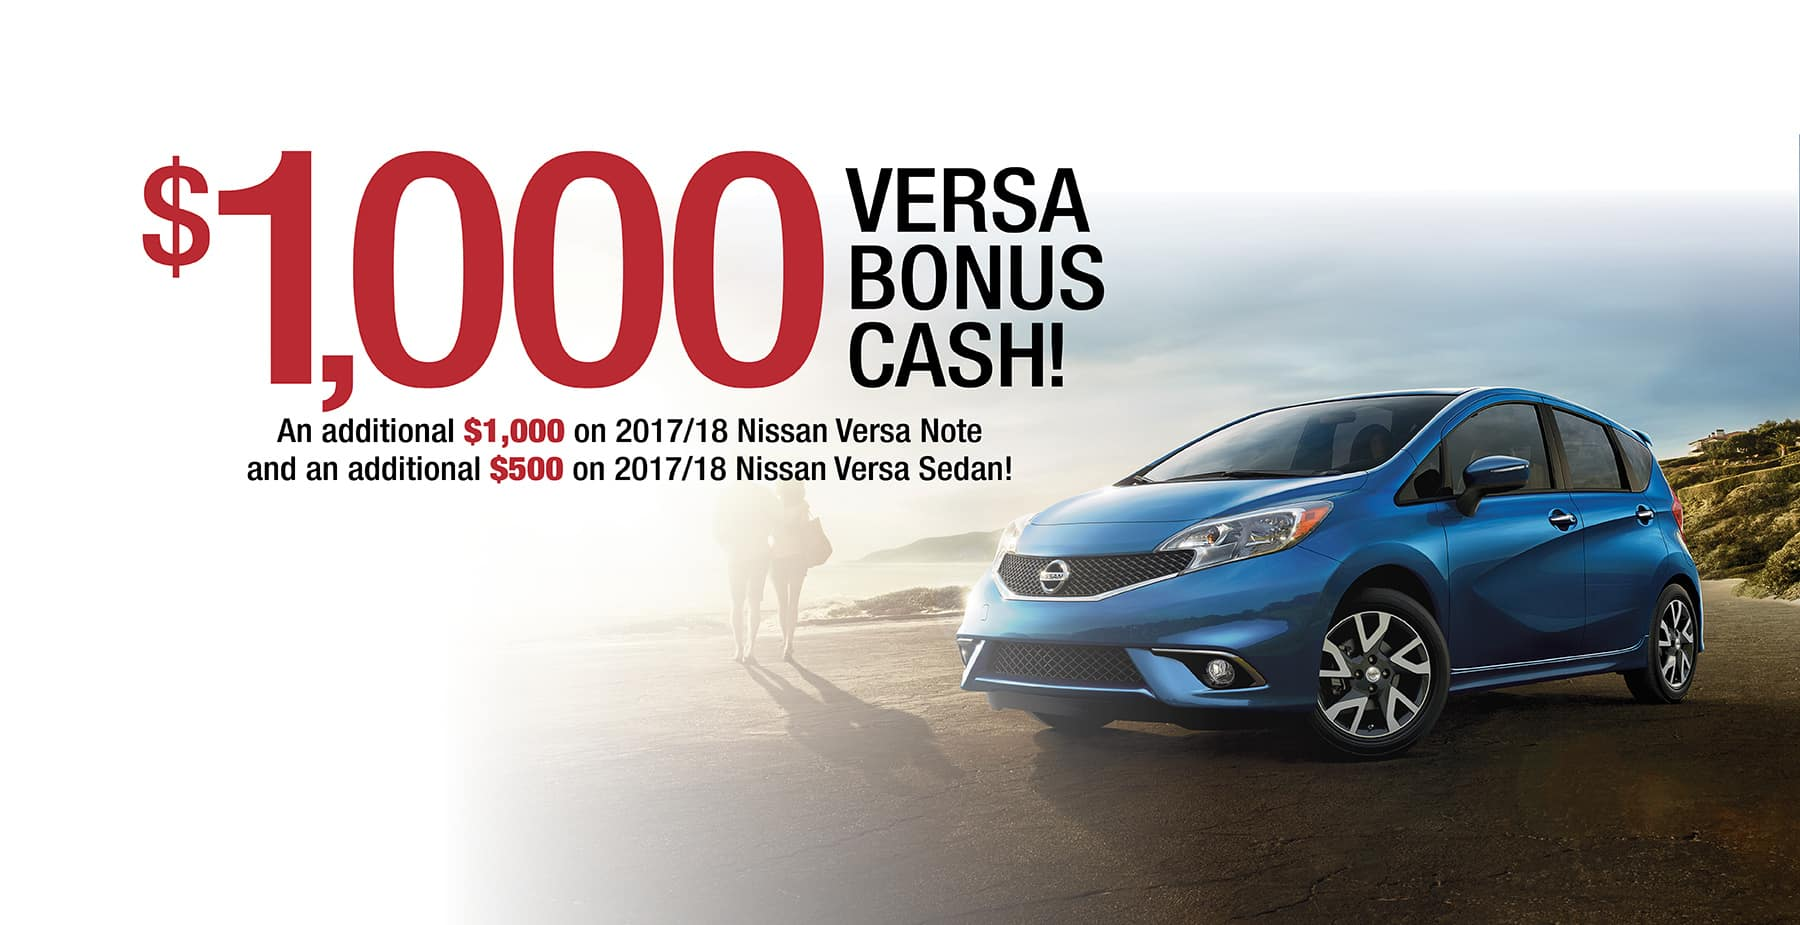 Up to $1,000 Nissan Bonus Cash on Nissan Versa!